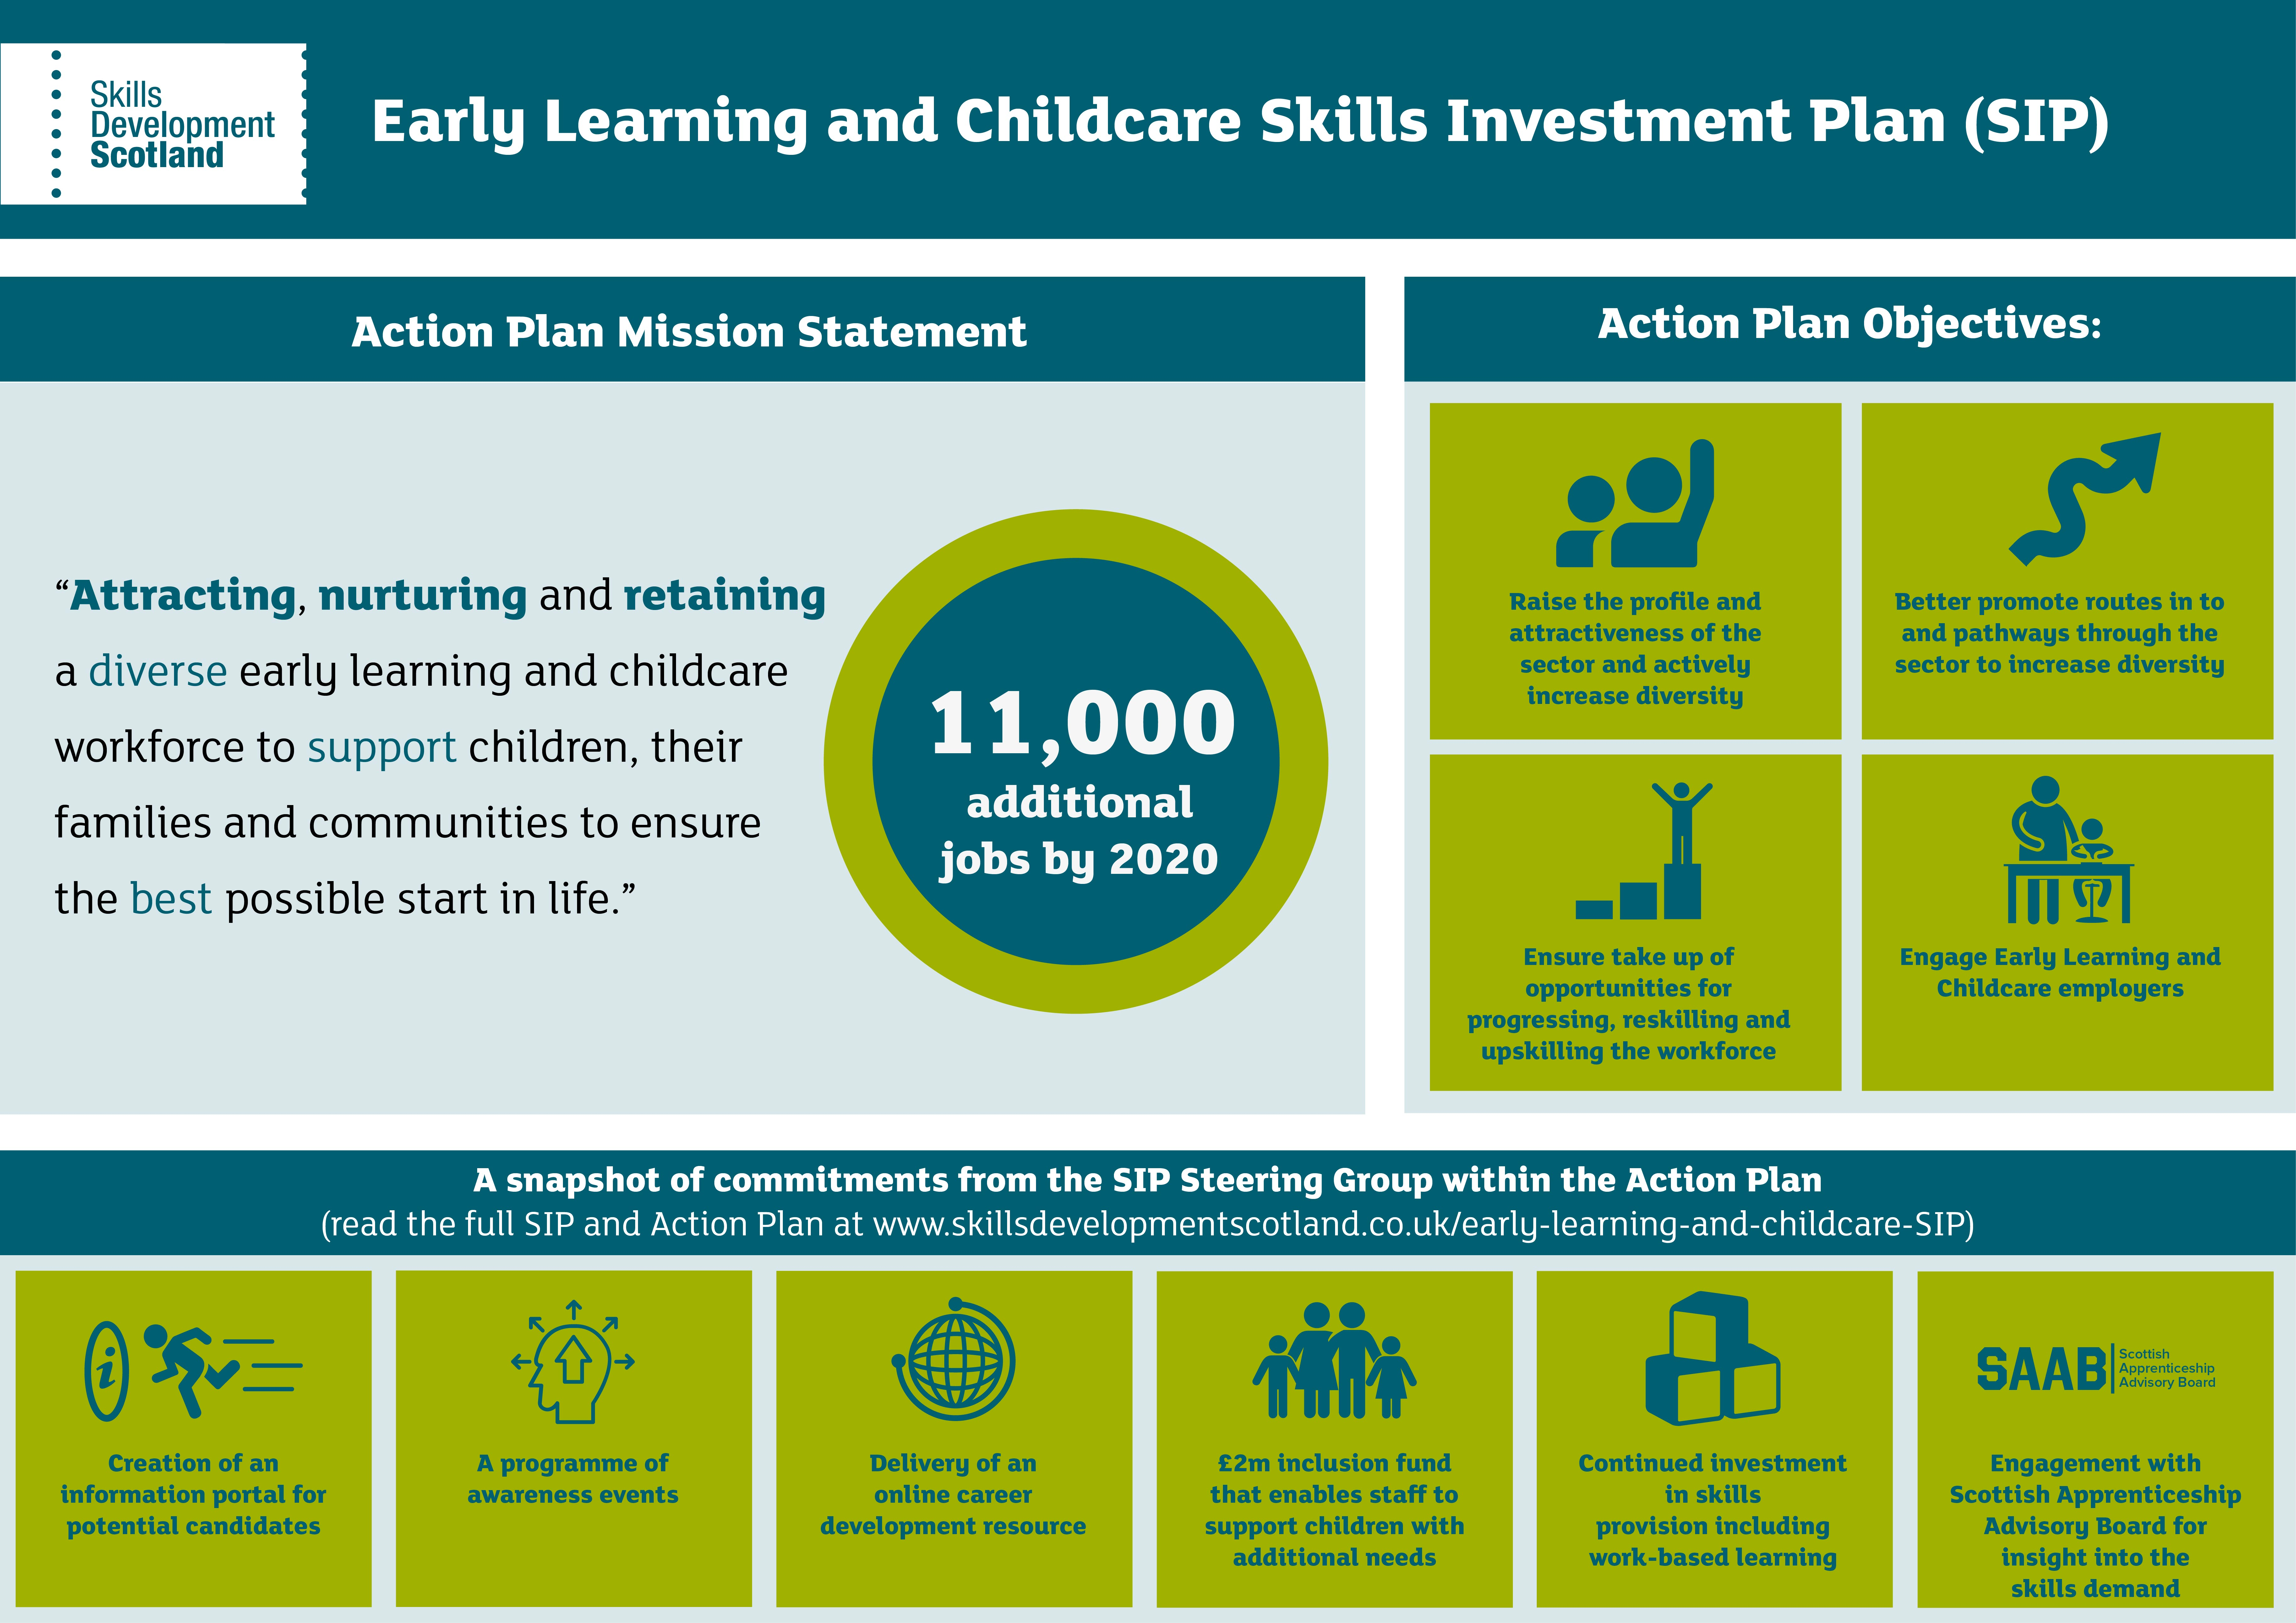 0581_Early Learning and Childcare Skills Investment Plan_Infographic